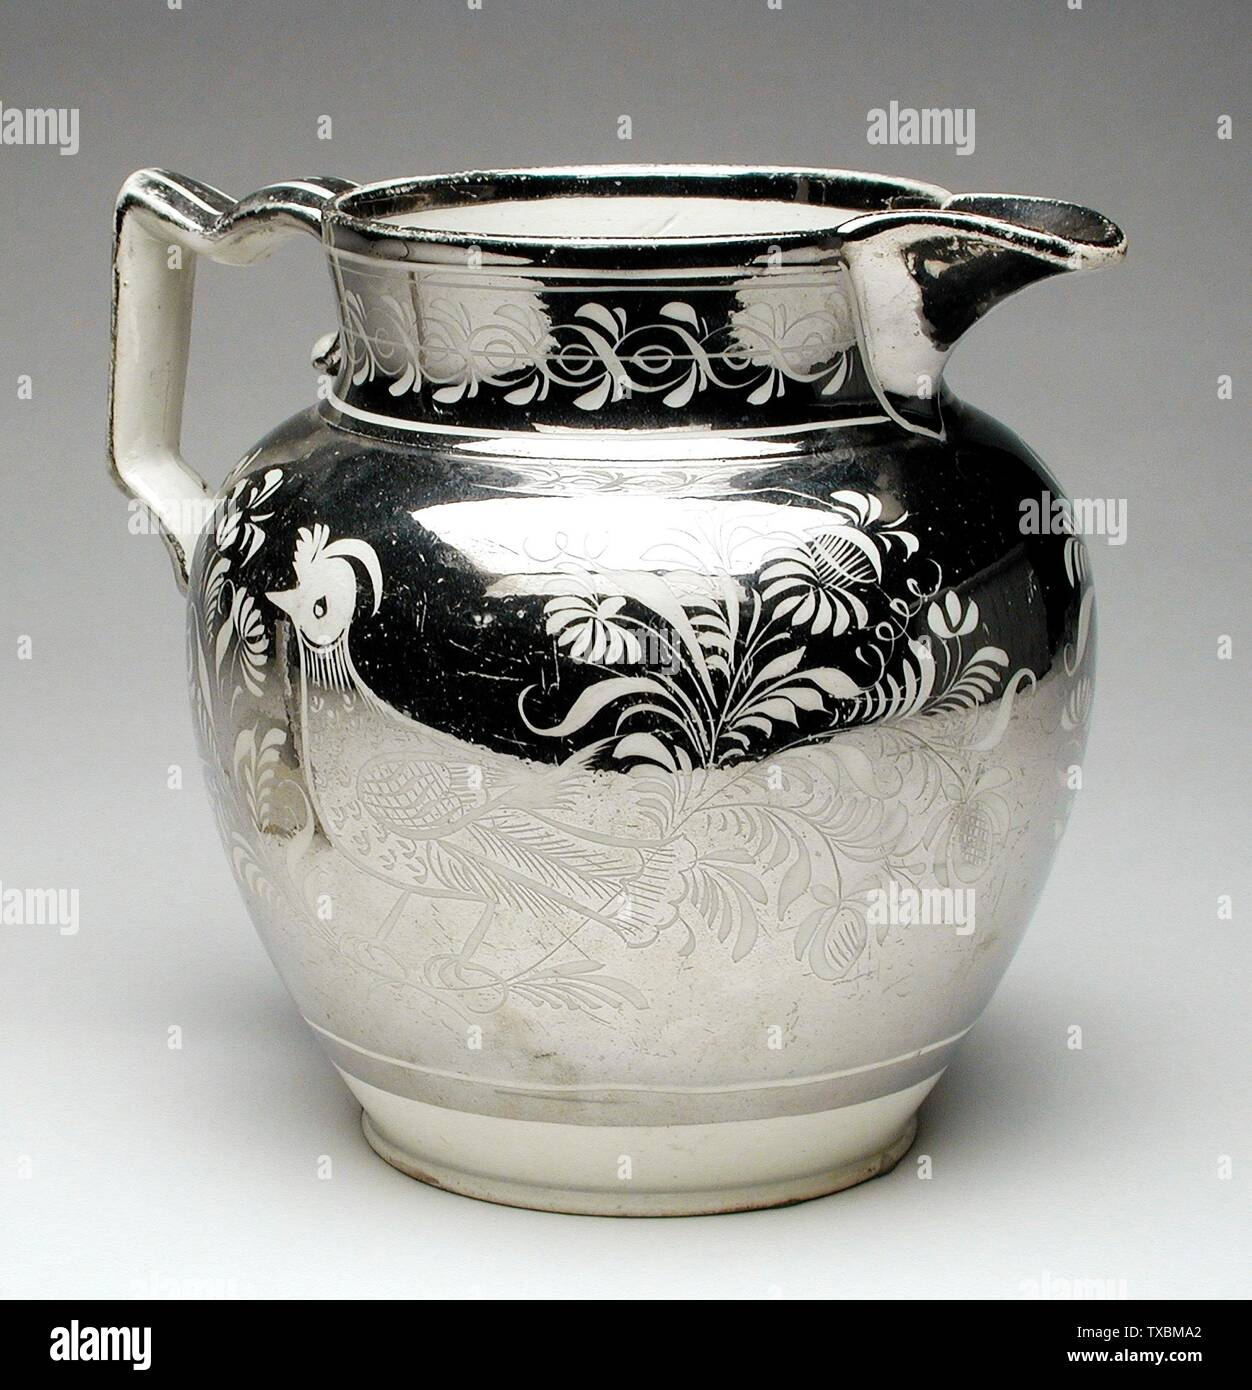 """Pitcher; English:  England, circa 1810 Furnishings; Serviceware Pearlware (earthenware), silver lustre Height:  5 1/4 in. (13.34 cm); Diameter of base:  3 in. (7.62 cm) Gift of Mrs. Anna Bing Arnold (M.73.28.7) Decorative Arts and Design; circa 1810 date QS:P571,+1810-00-00T00:00:00Z/9,P1480,Q5727902; "" Stock Photo"